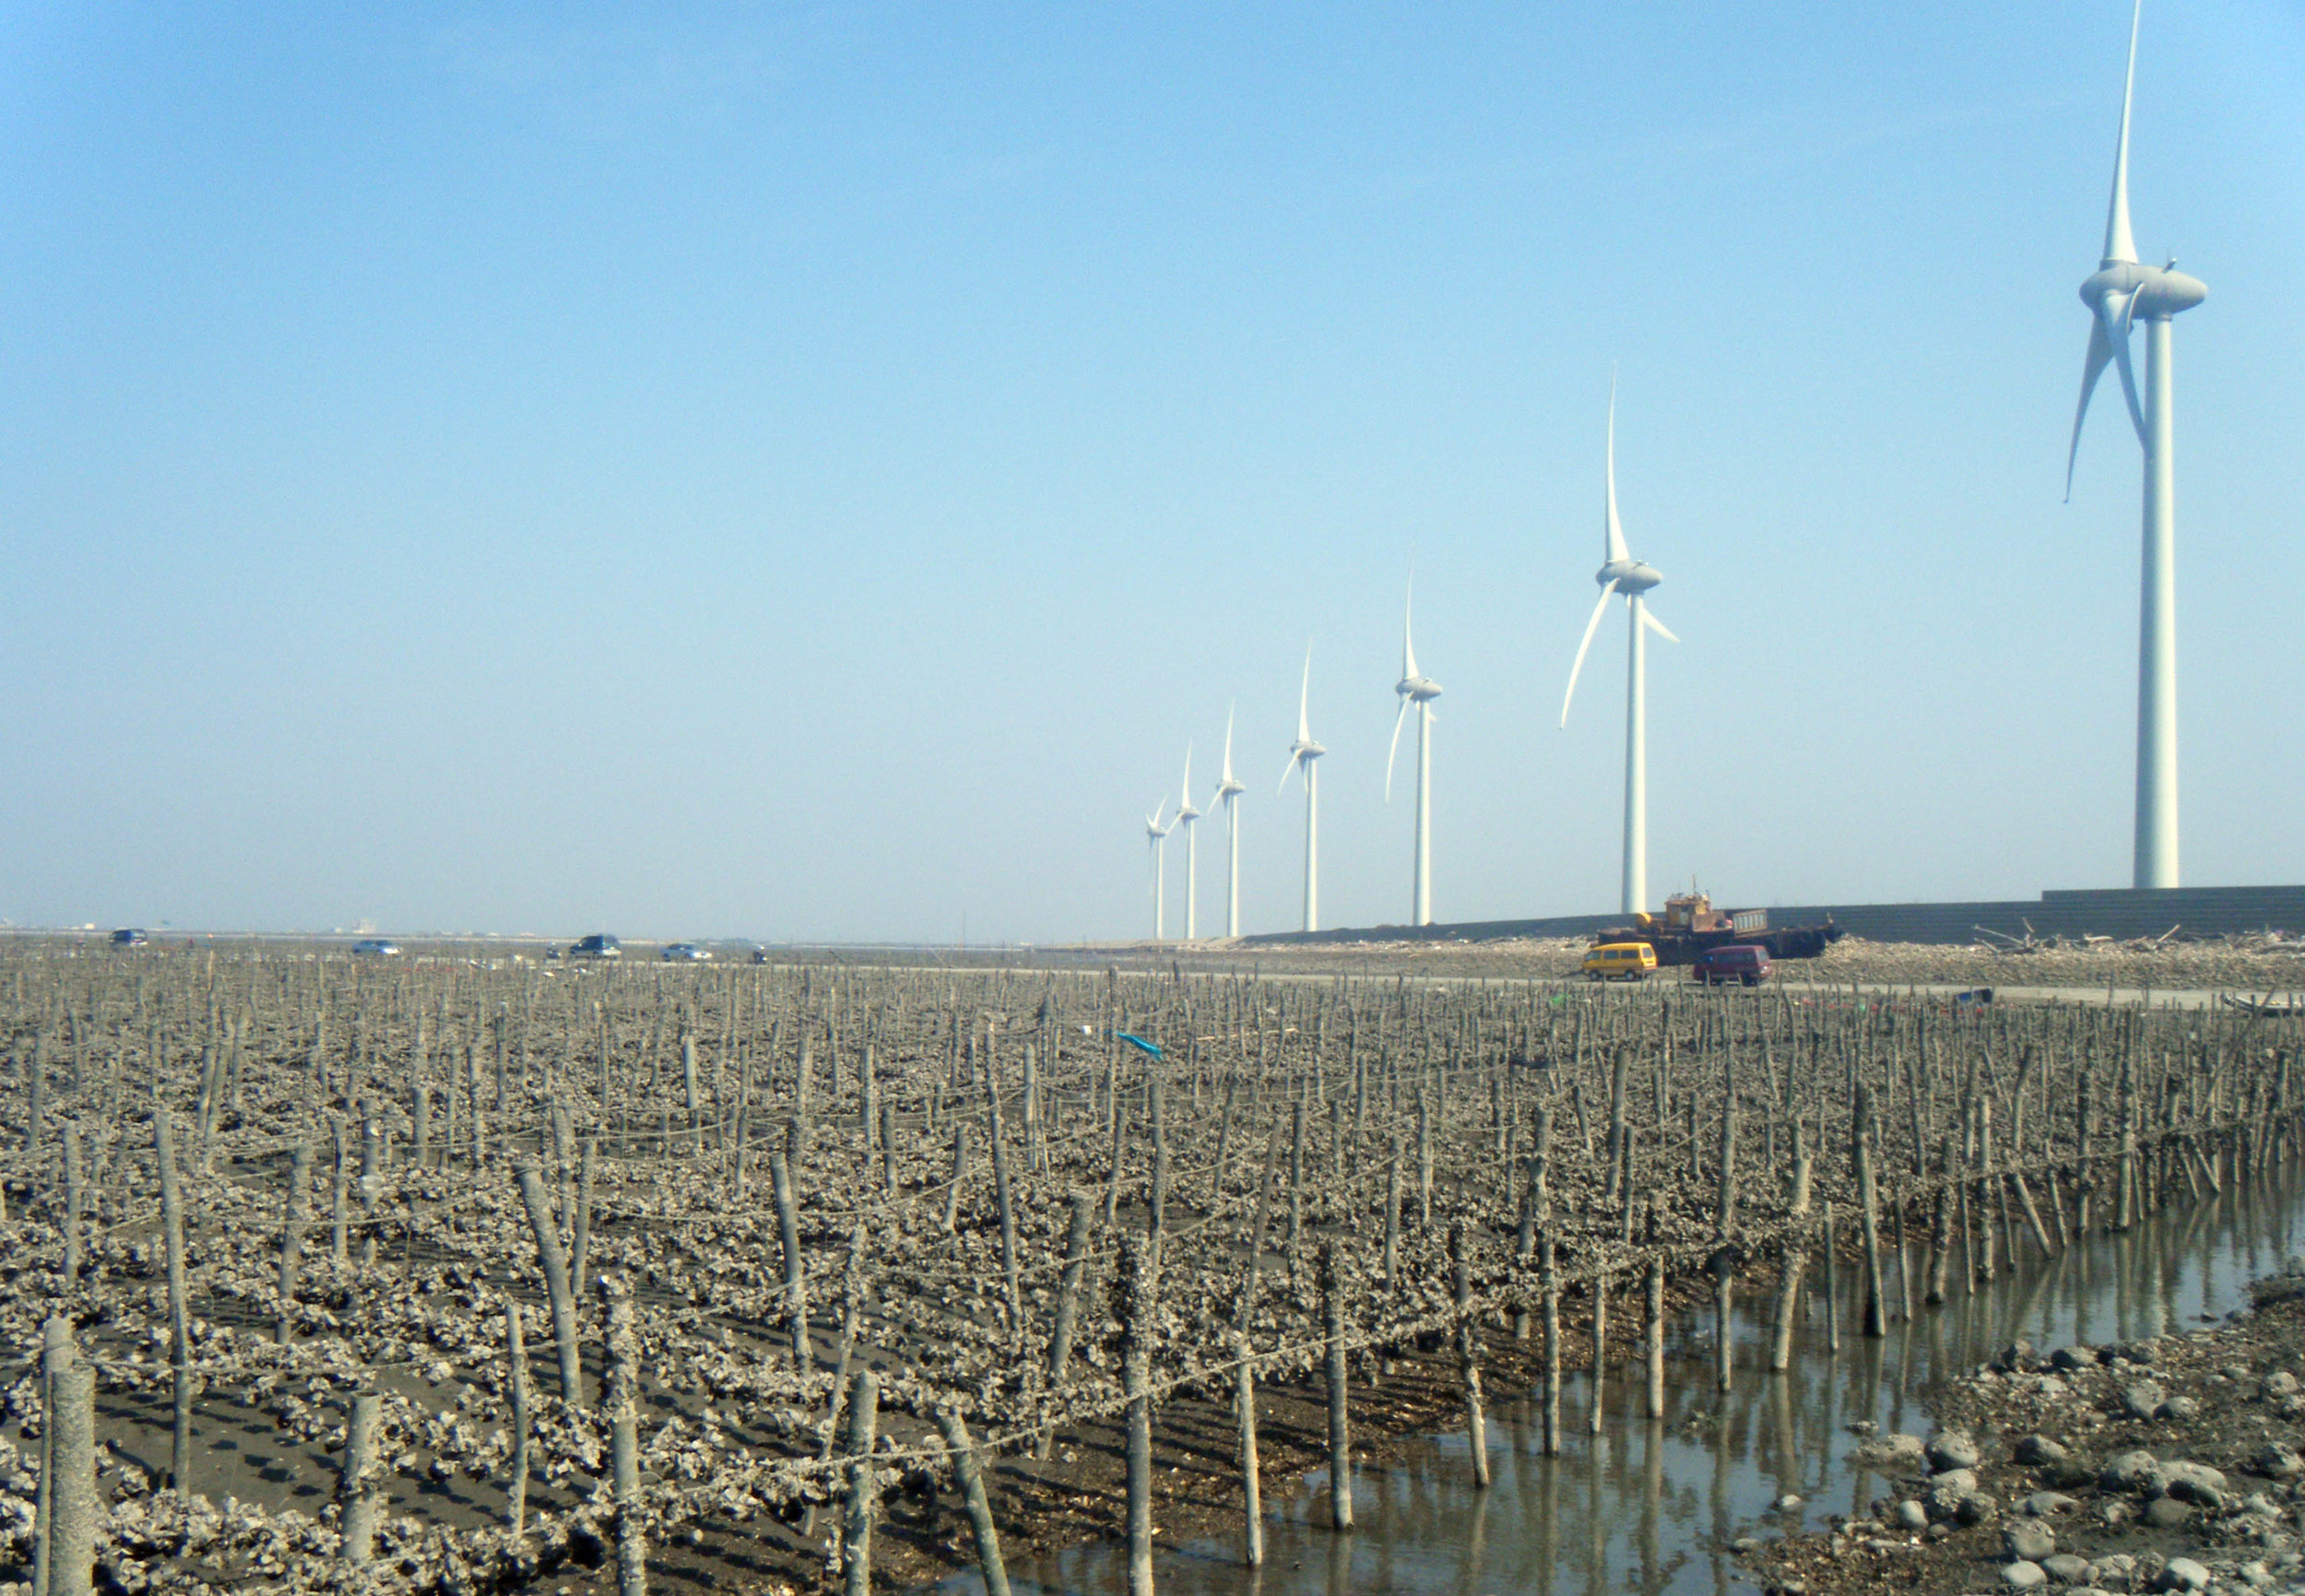 oyster culture and wind farm.jpg